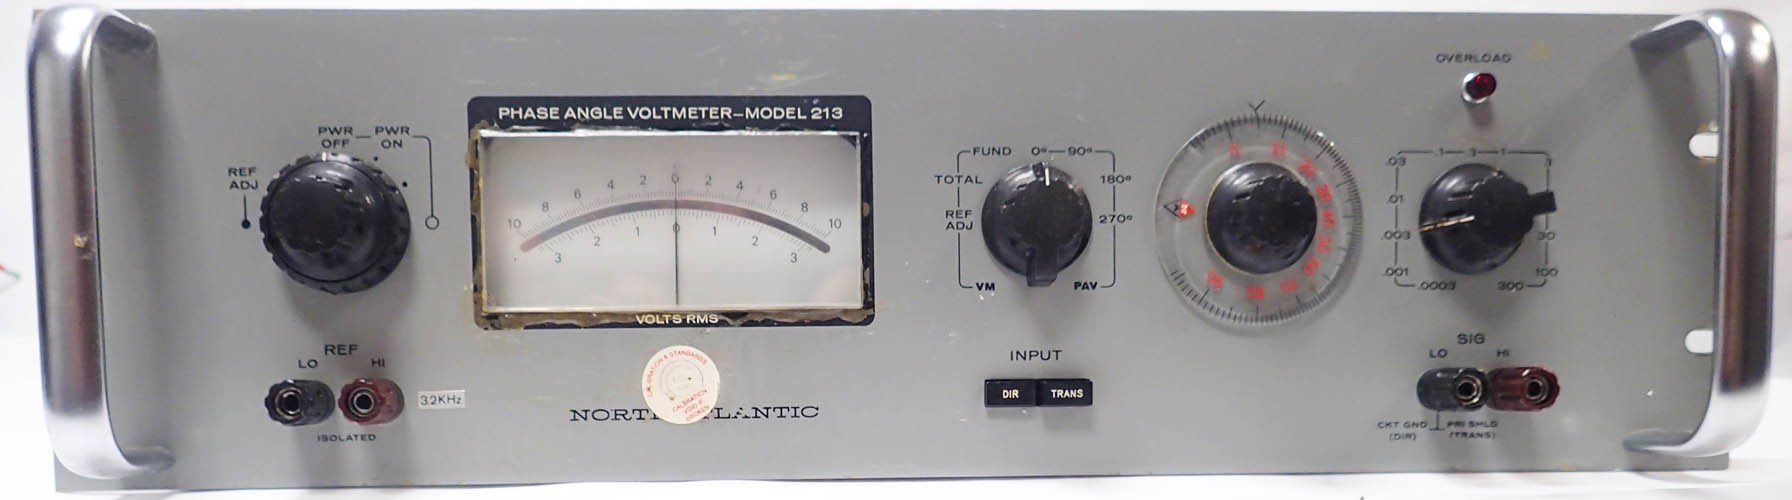 North Atlantic 213C Phase Angle Voltmeter Input Frequency range 10Hz to 100kHz